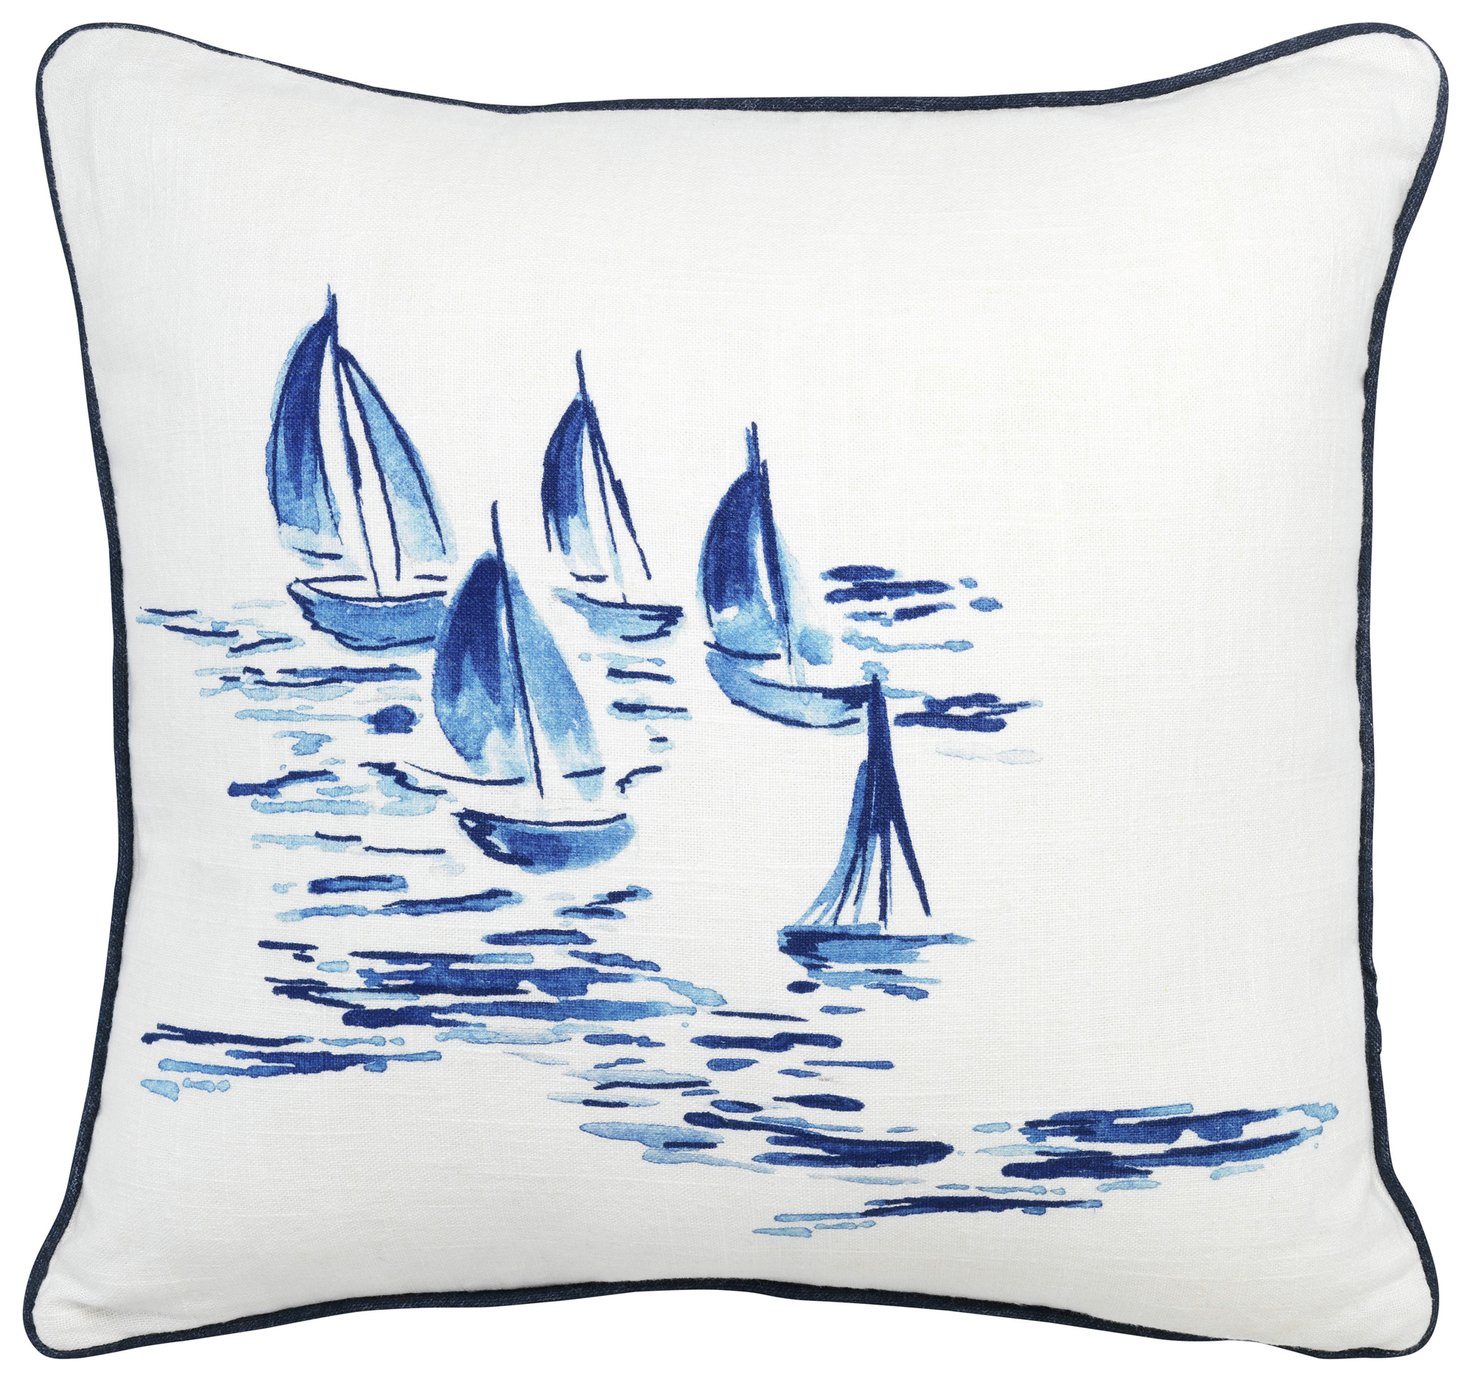 Sainsbury's Home Riviera Boat Printed Cushion